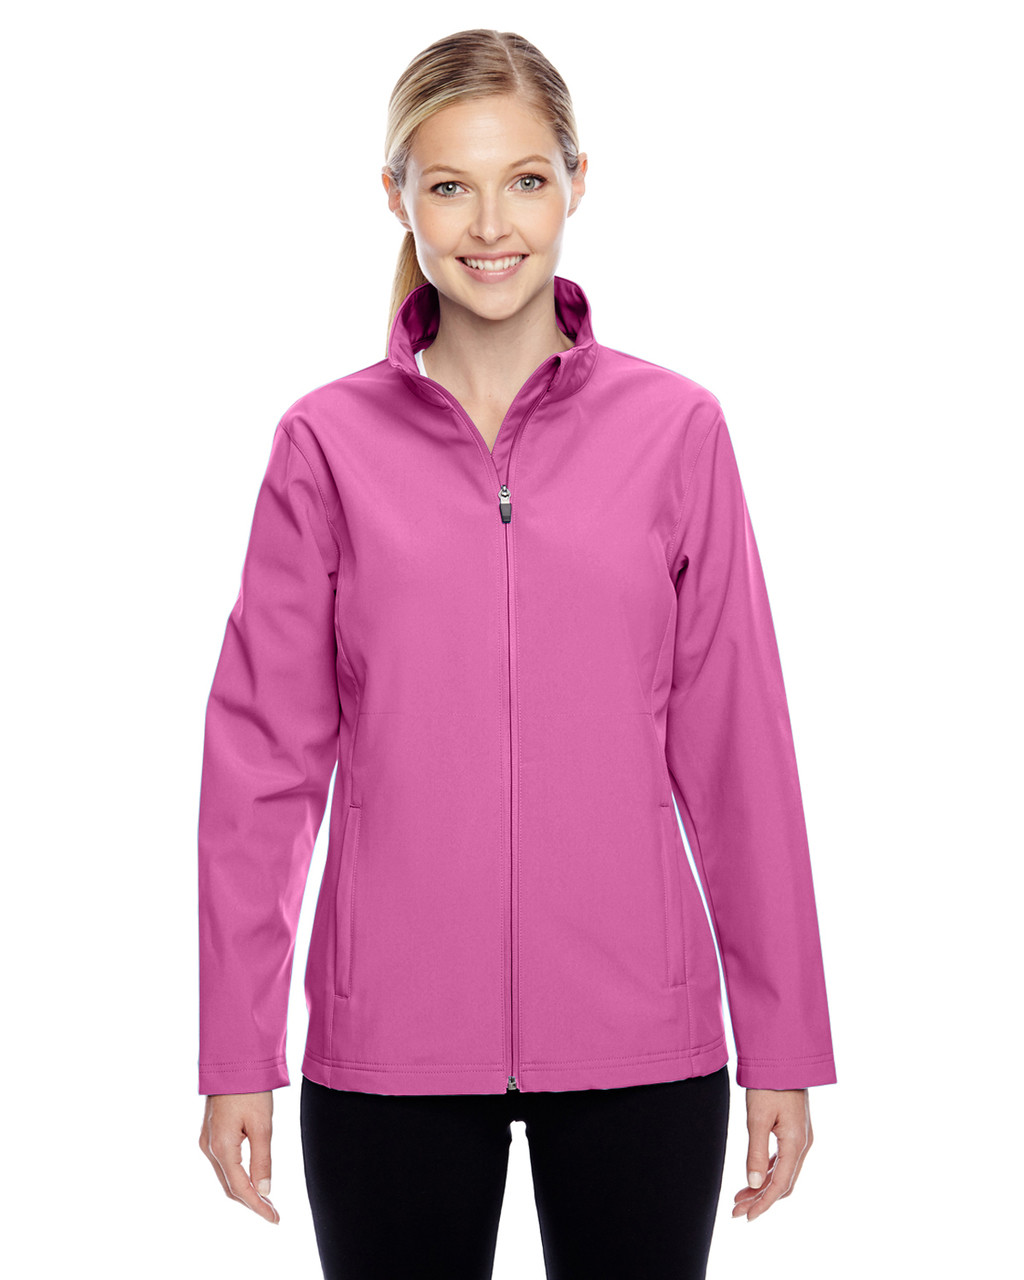 Charity Pink - TT80W Team 365 Leader Soft Shell Jacket | BlankClothing.ca